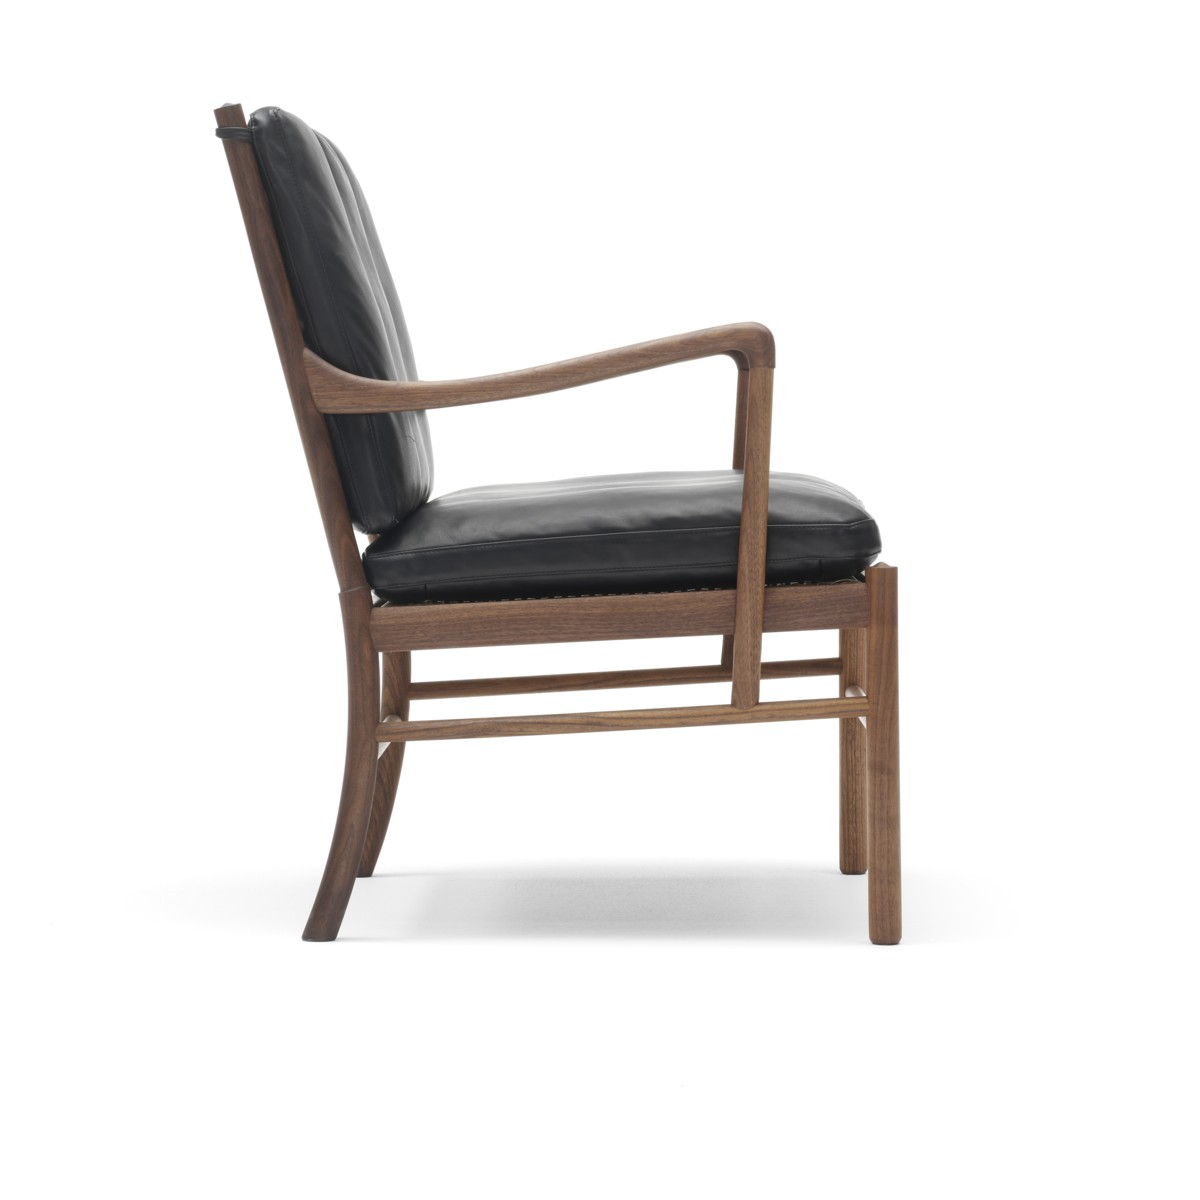 Side view of a Carl Hansen OW147 Colonial chair